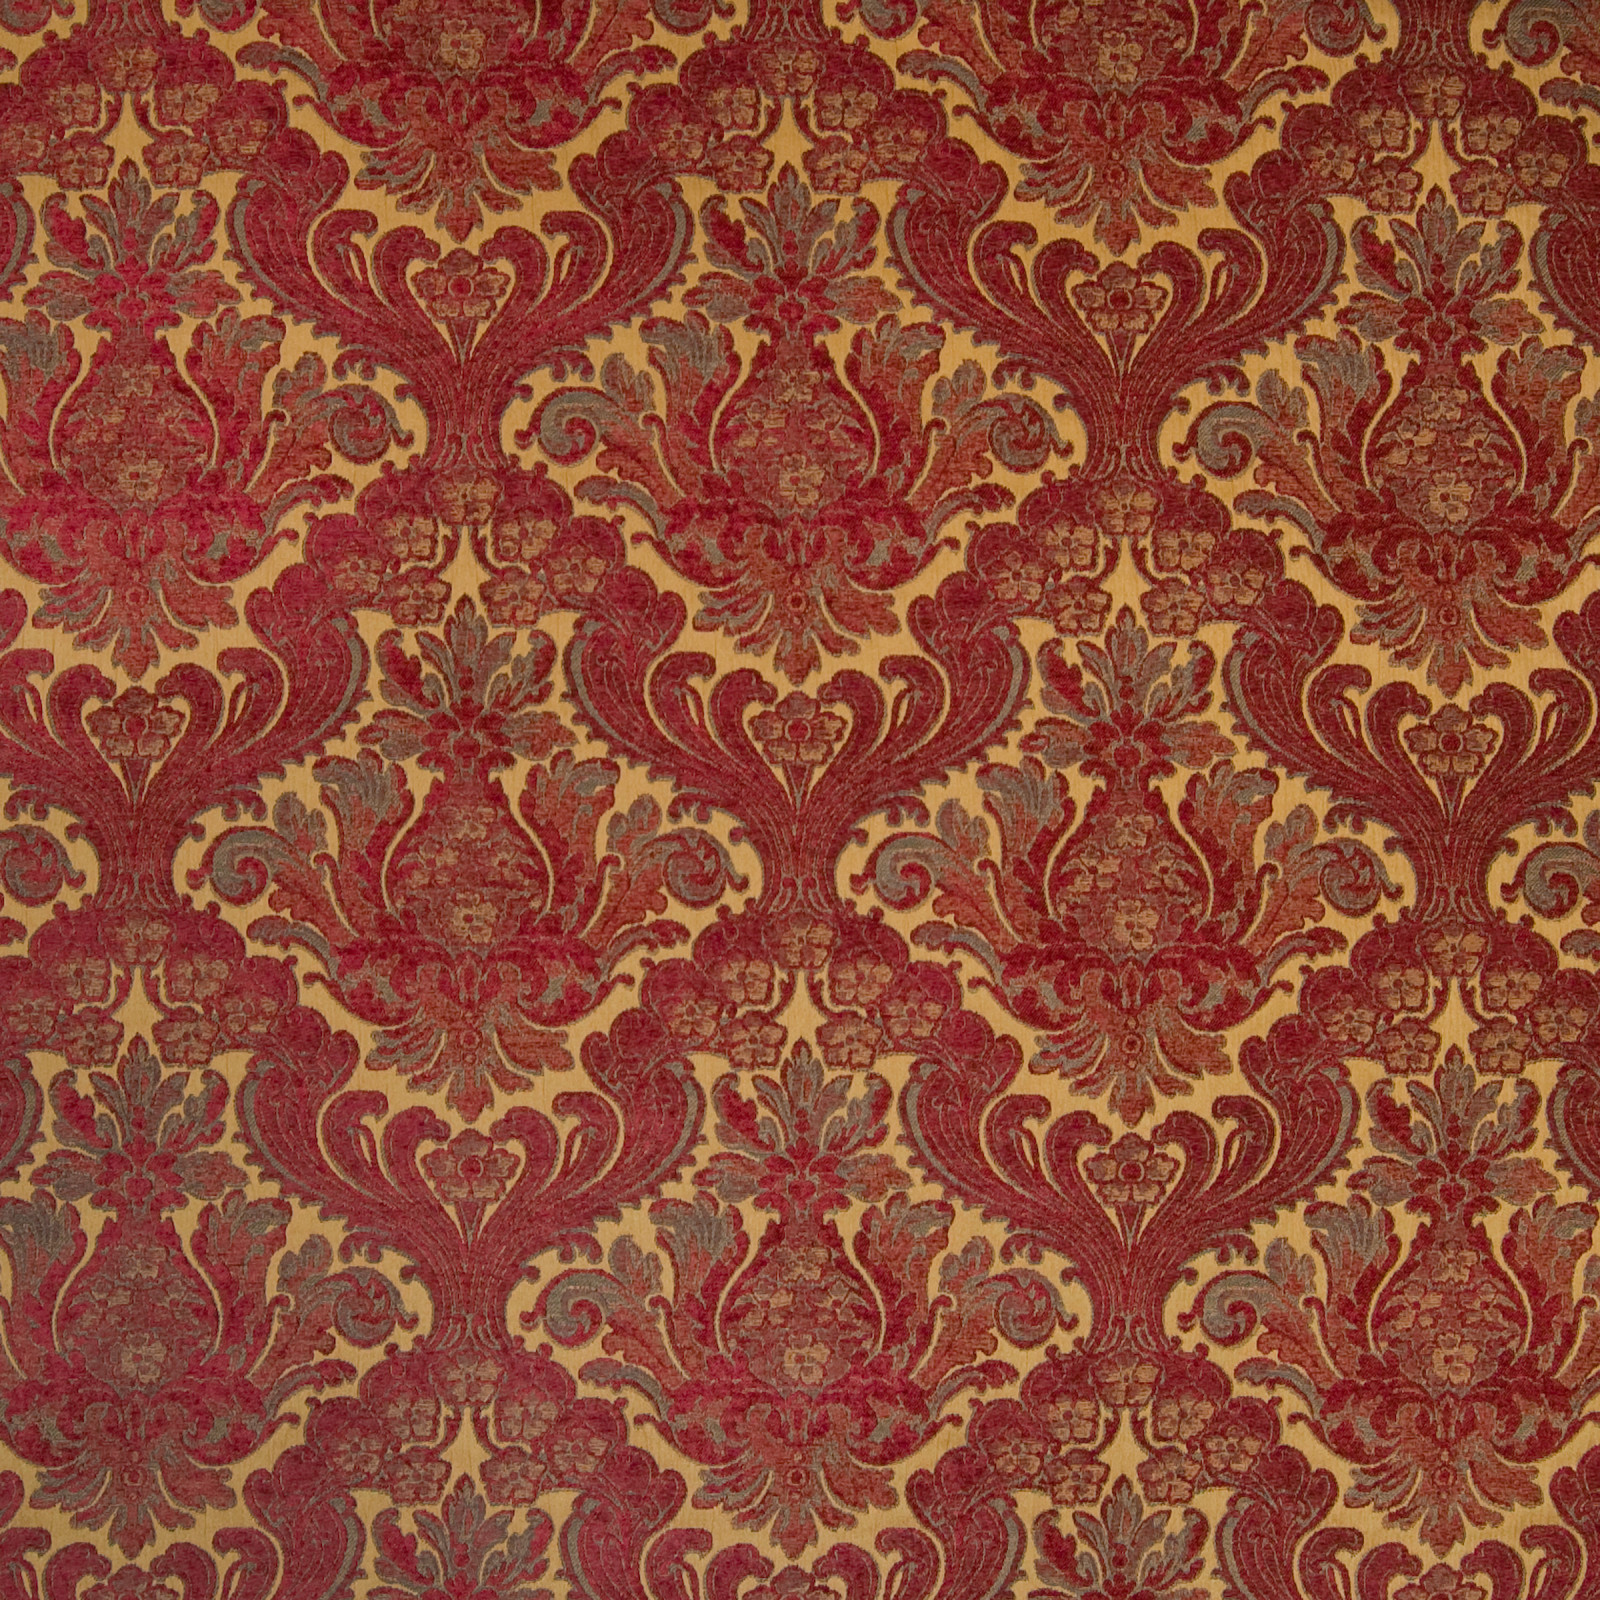 Moroccan Red Red Floral Chenille Upholstery Fabric